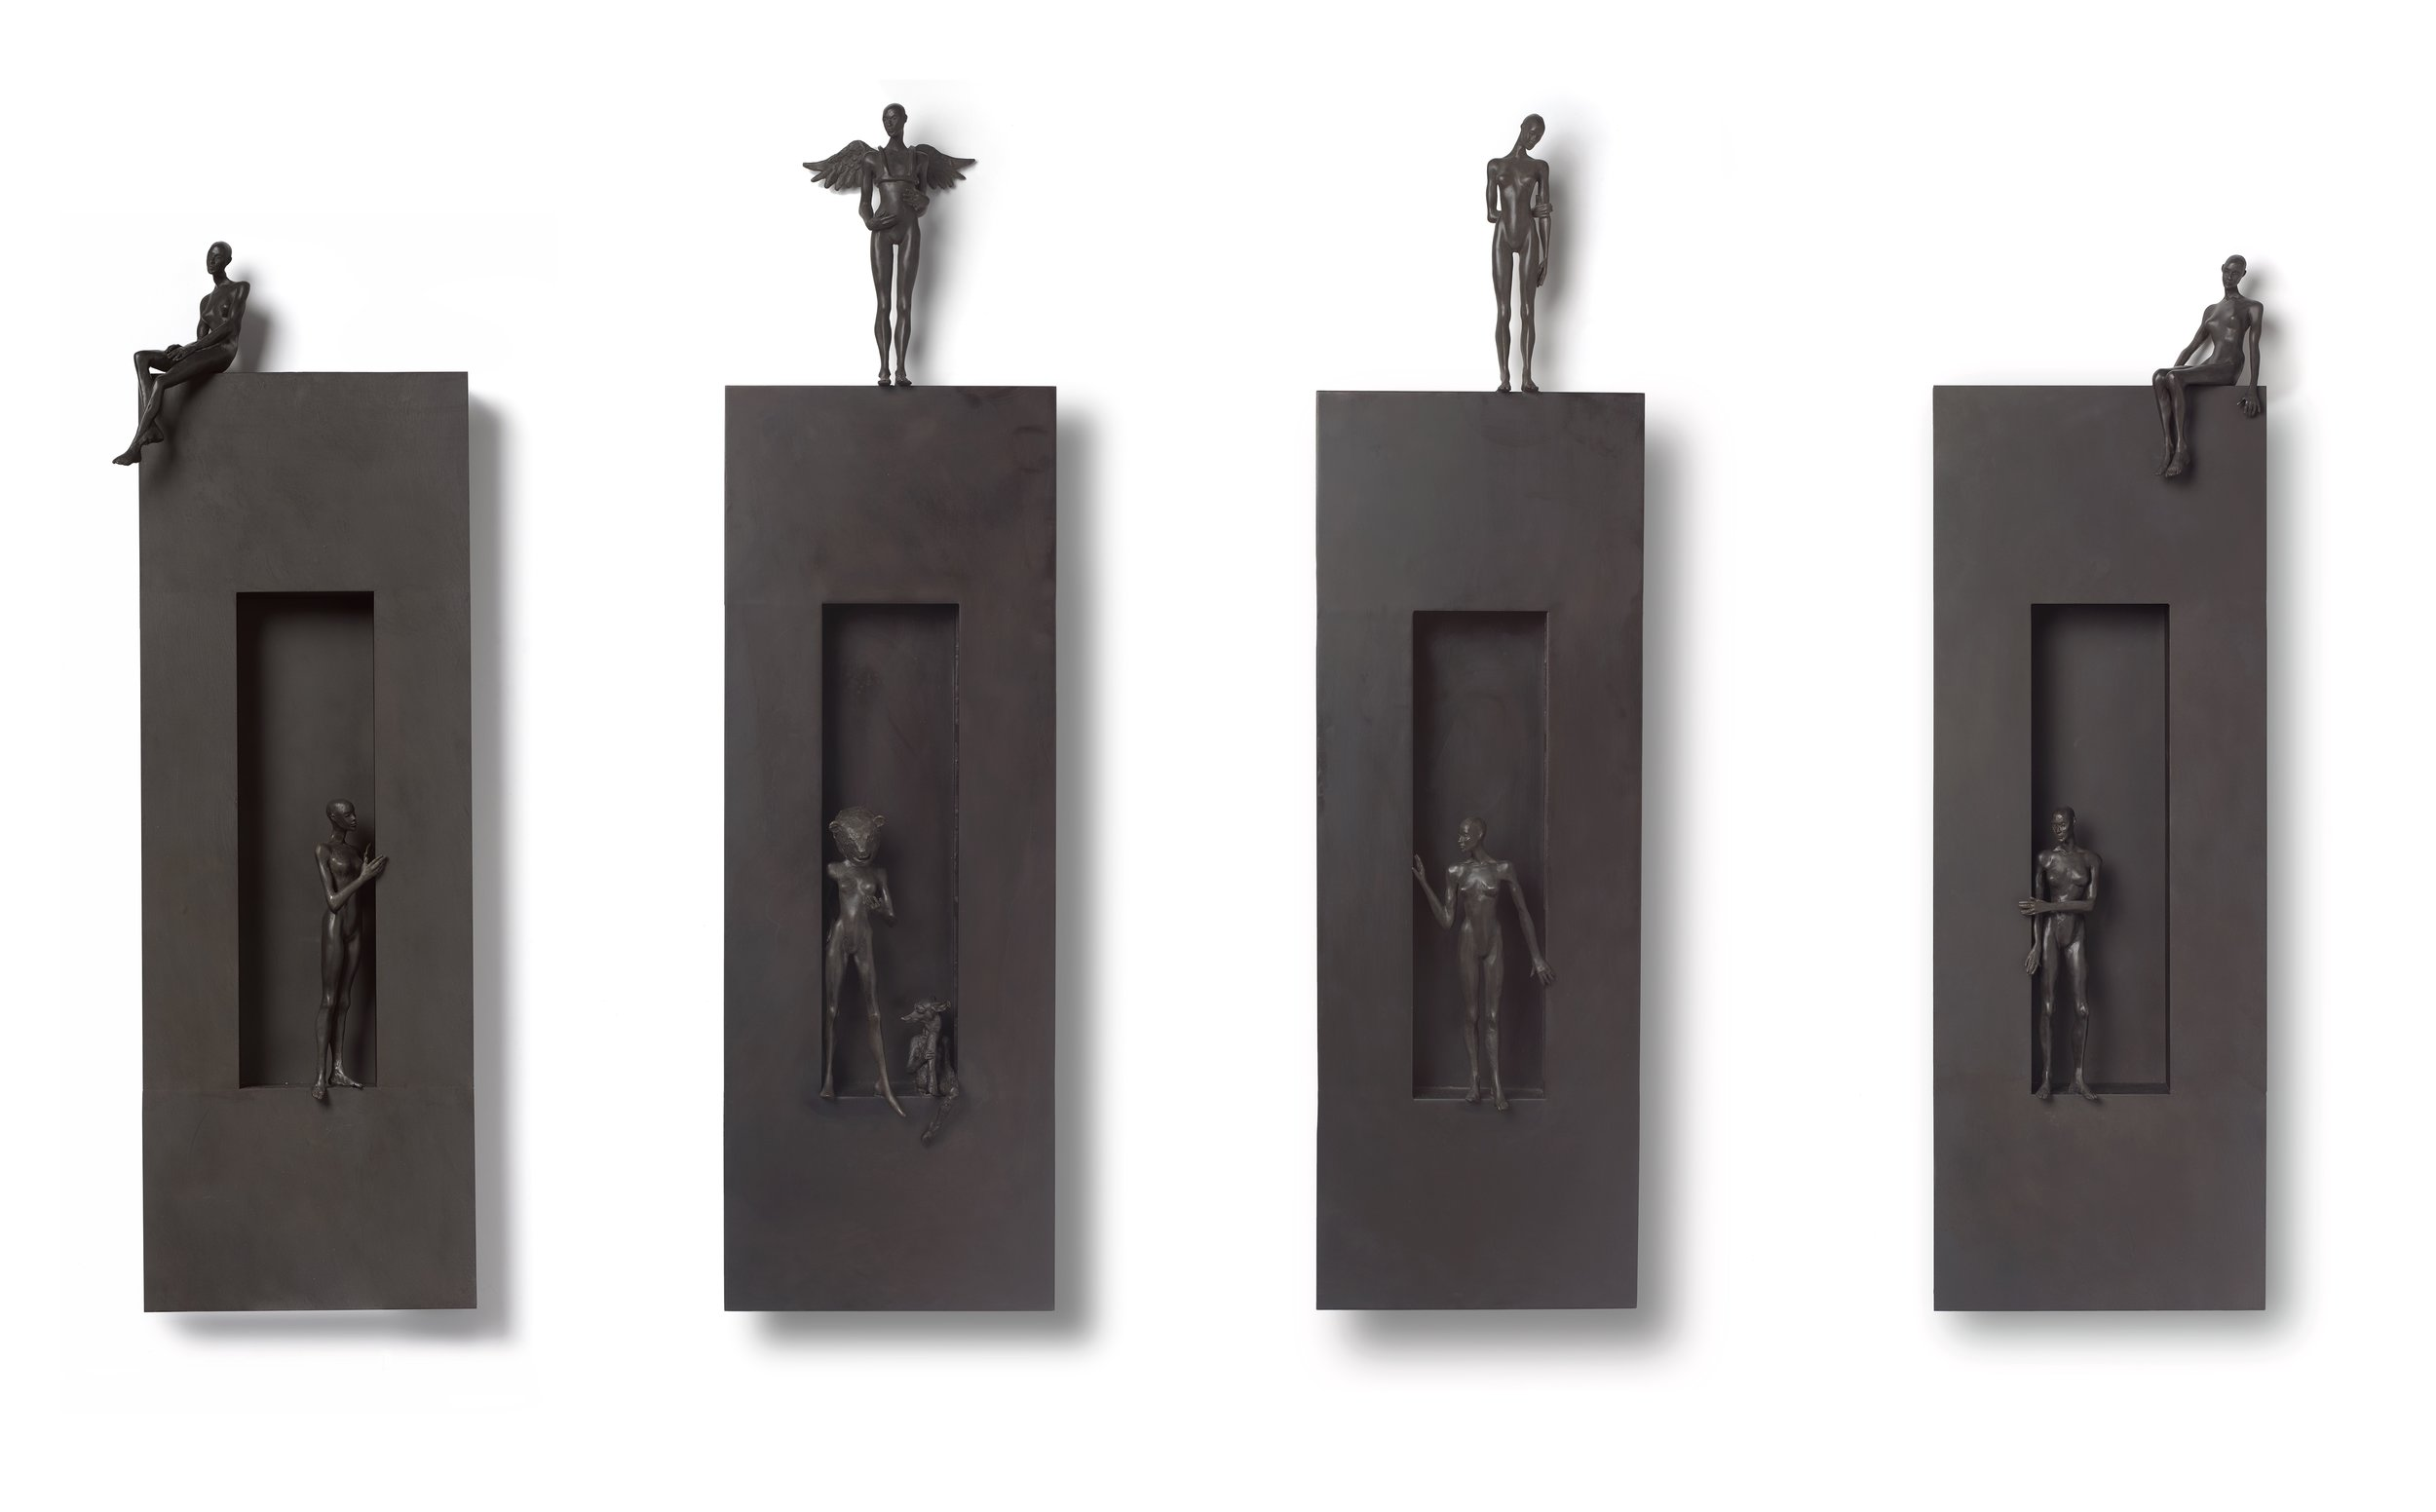 The Return ,  Foreign Language ,  The Visitor , and  At the Edge,  2019 bronze and wood 39 x 12 x 2 1/2 inches; 99.1 x 30.5 x 6.3 centimeters